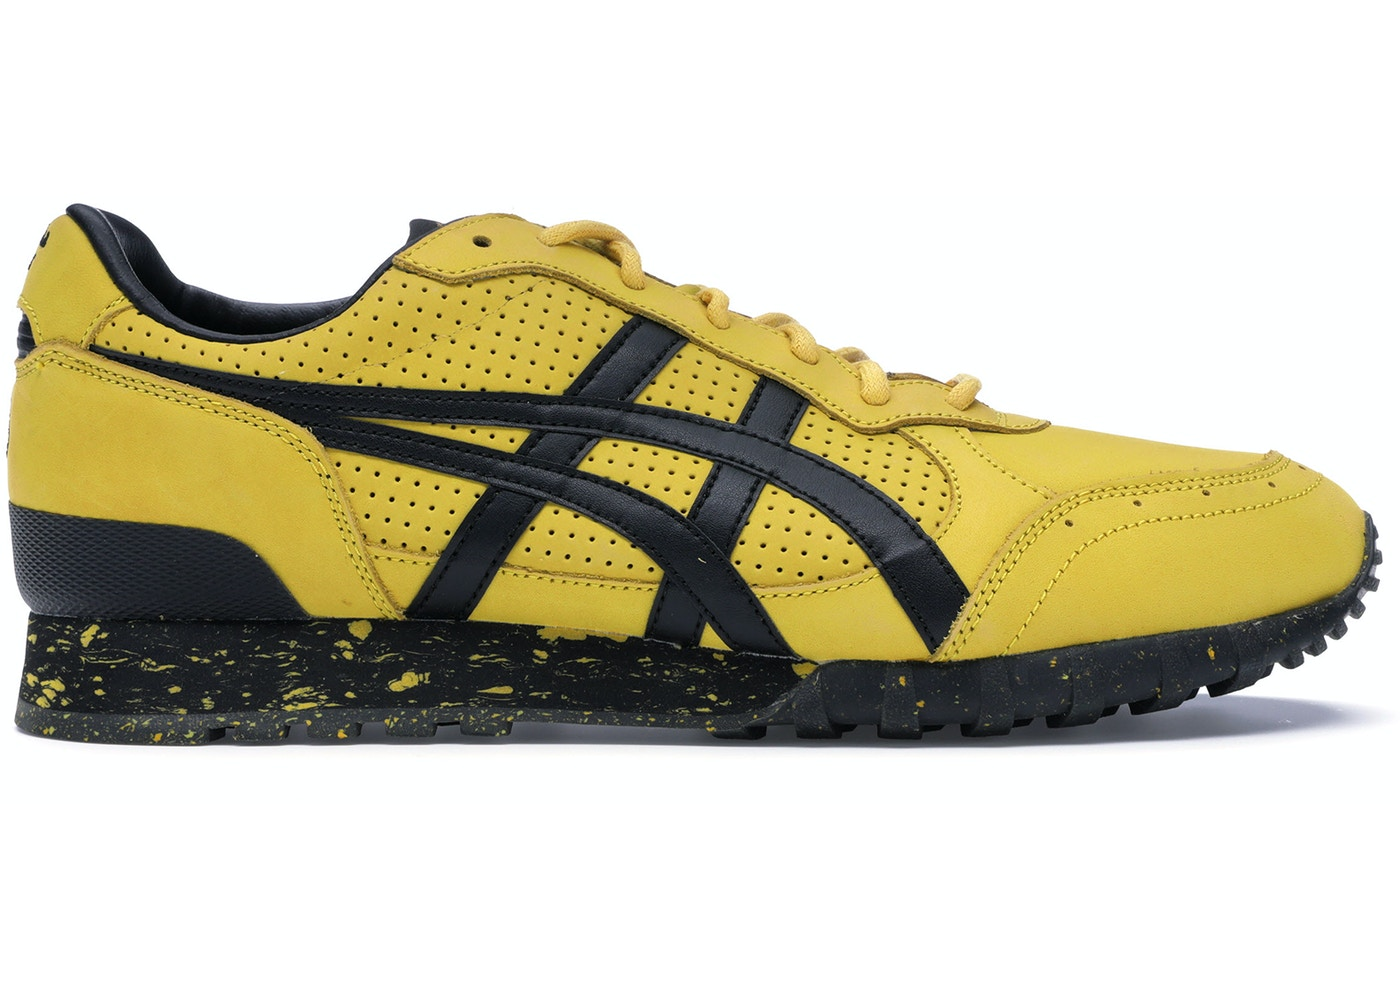 new style 8a0b1 6d472 ASICS Onitsuka Tiger Colorado 85 Bait Bruce Lee